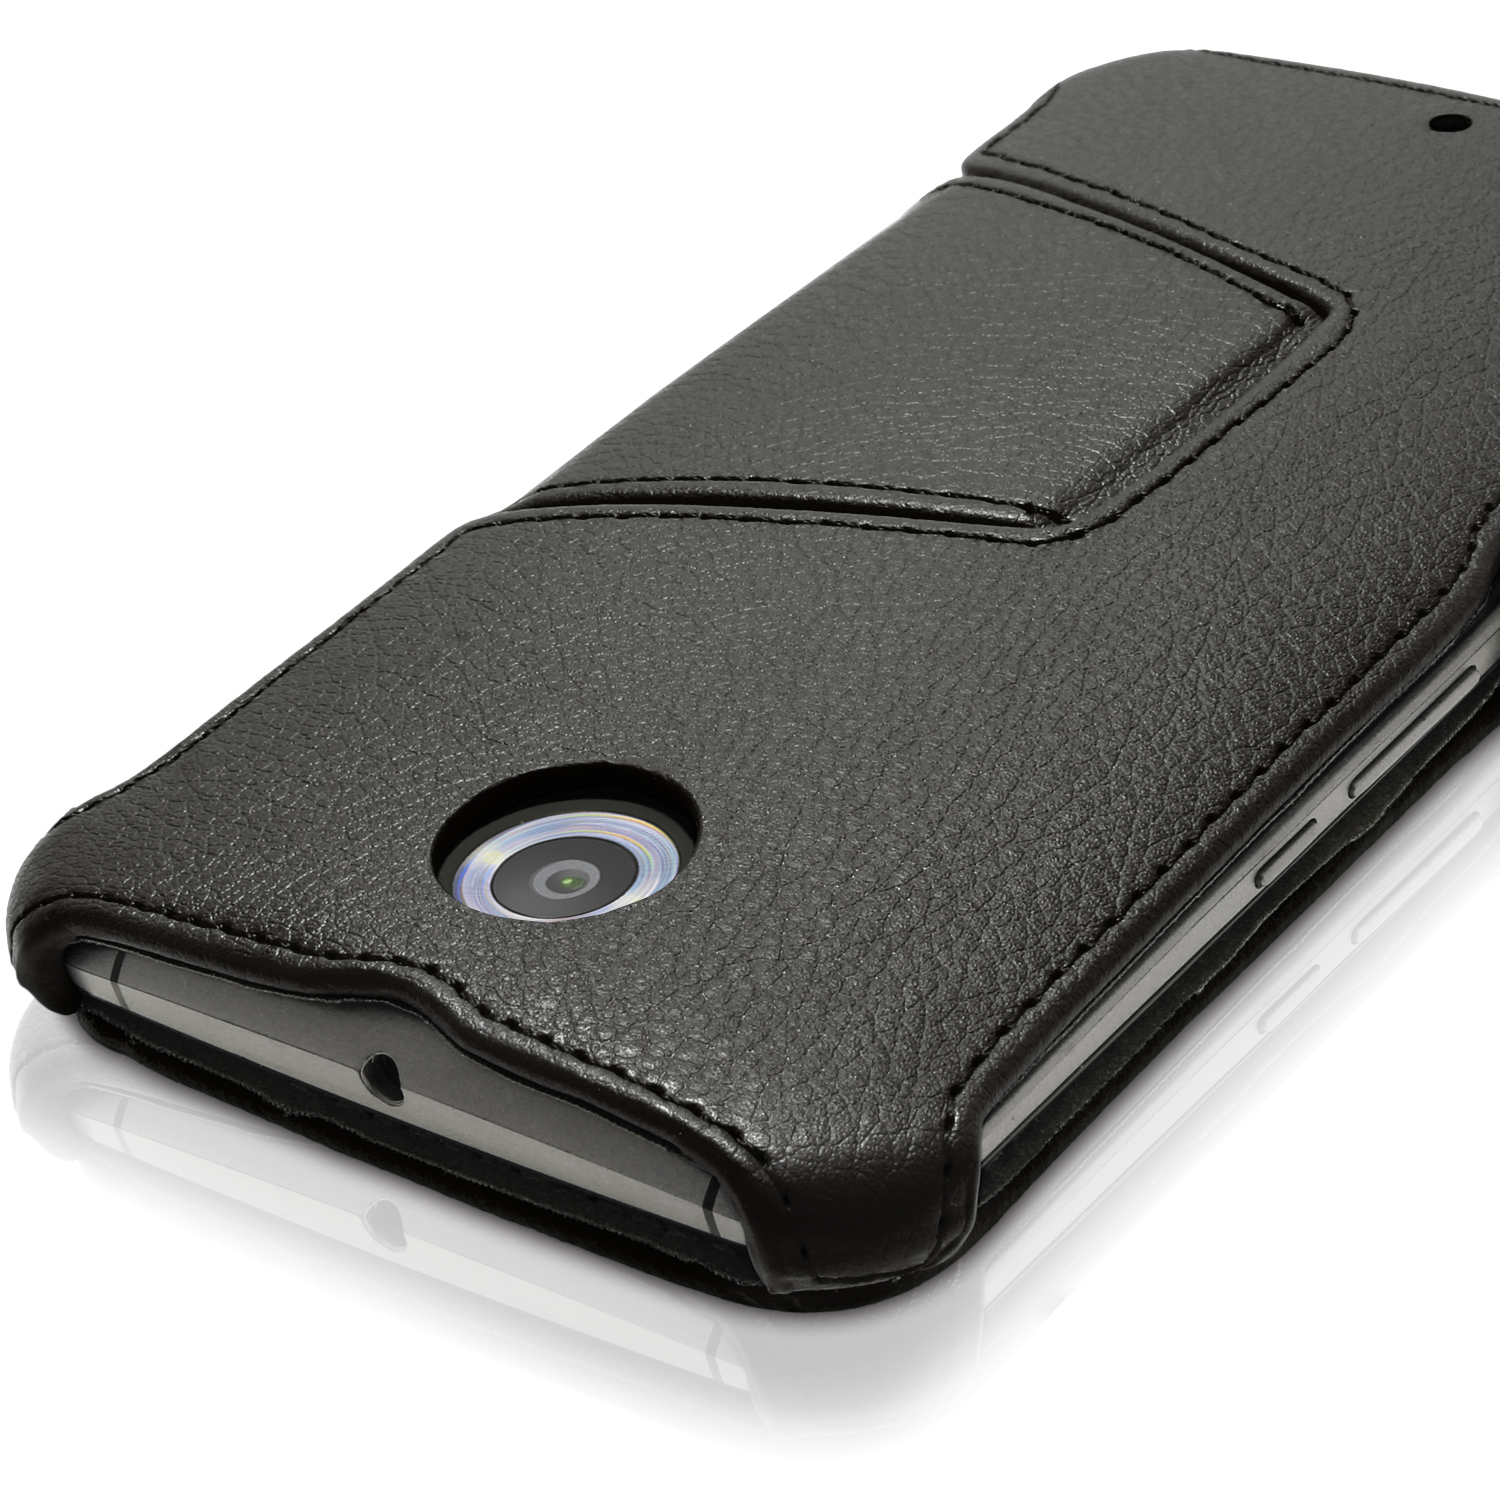 new style 30493 78bed Details about PU Leather Flip Case for Motorola Google Nexus 6 XT1100 Stand  Book Folio Cover